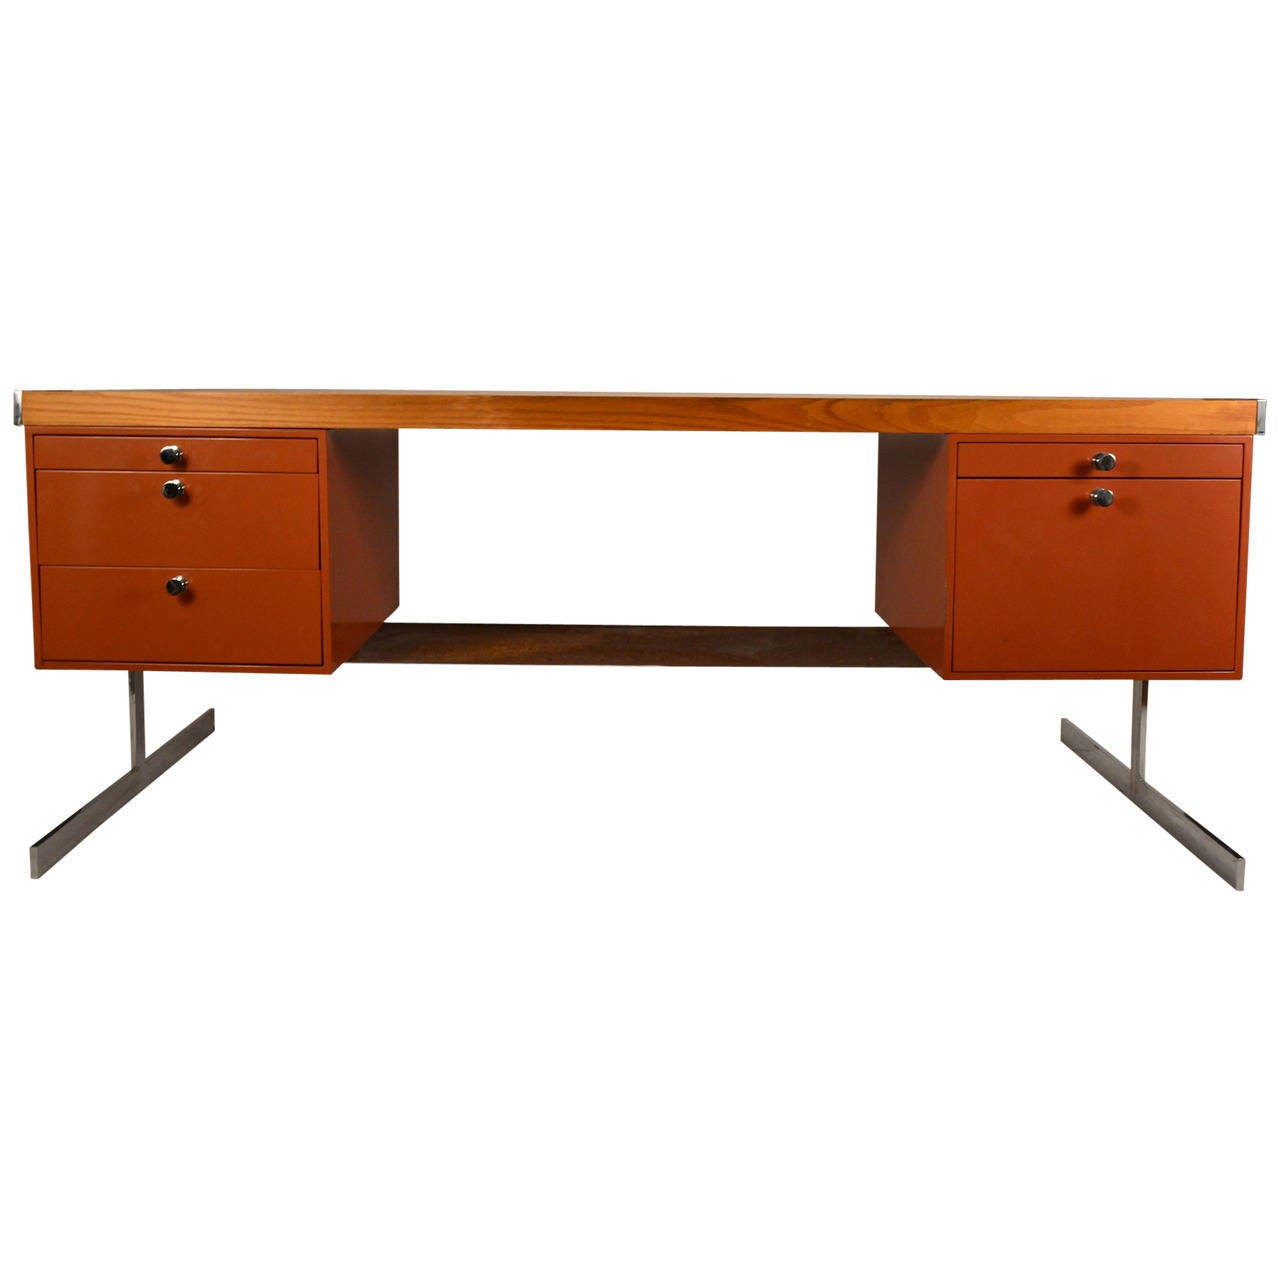 metal and wood large flat top desk . metal and wood large flat top desk for sale at stdibs